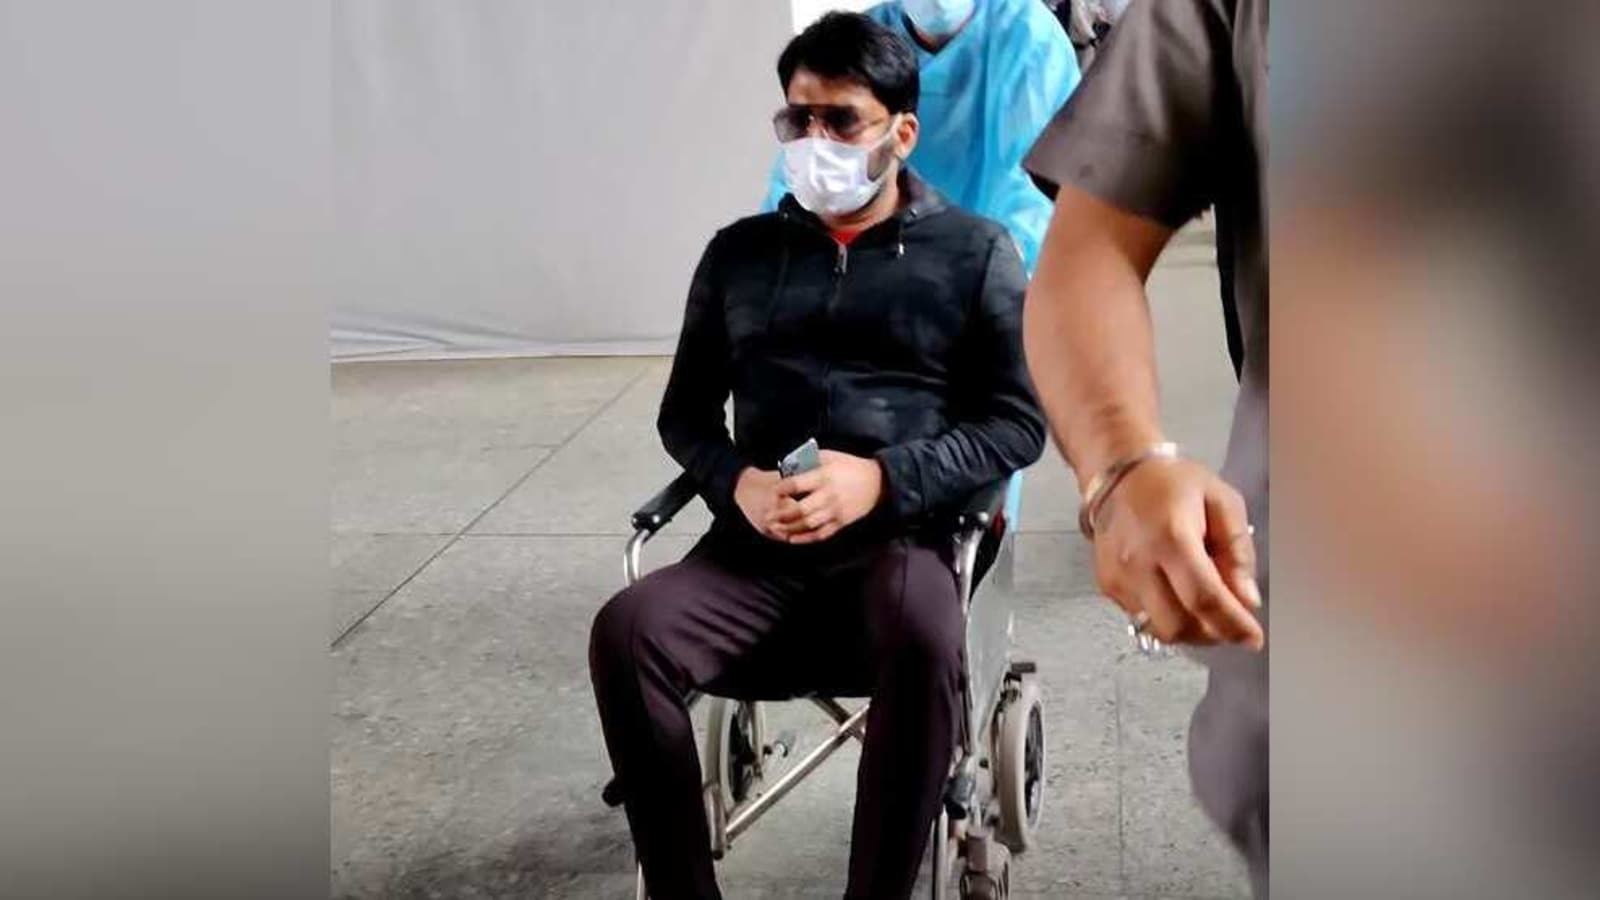 After Kapil Sharma was spotted at Mumbai airport on a wheelchair, Paparazzi gathered  to ask him questions and he lost his cool.